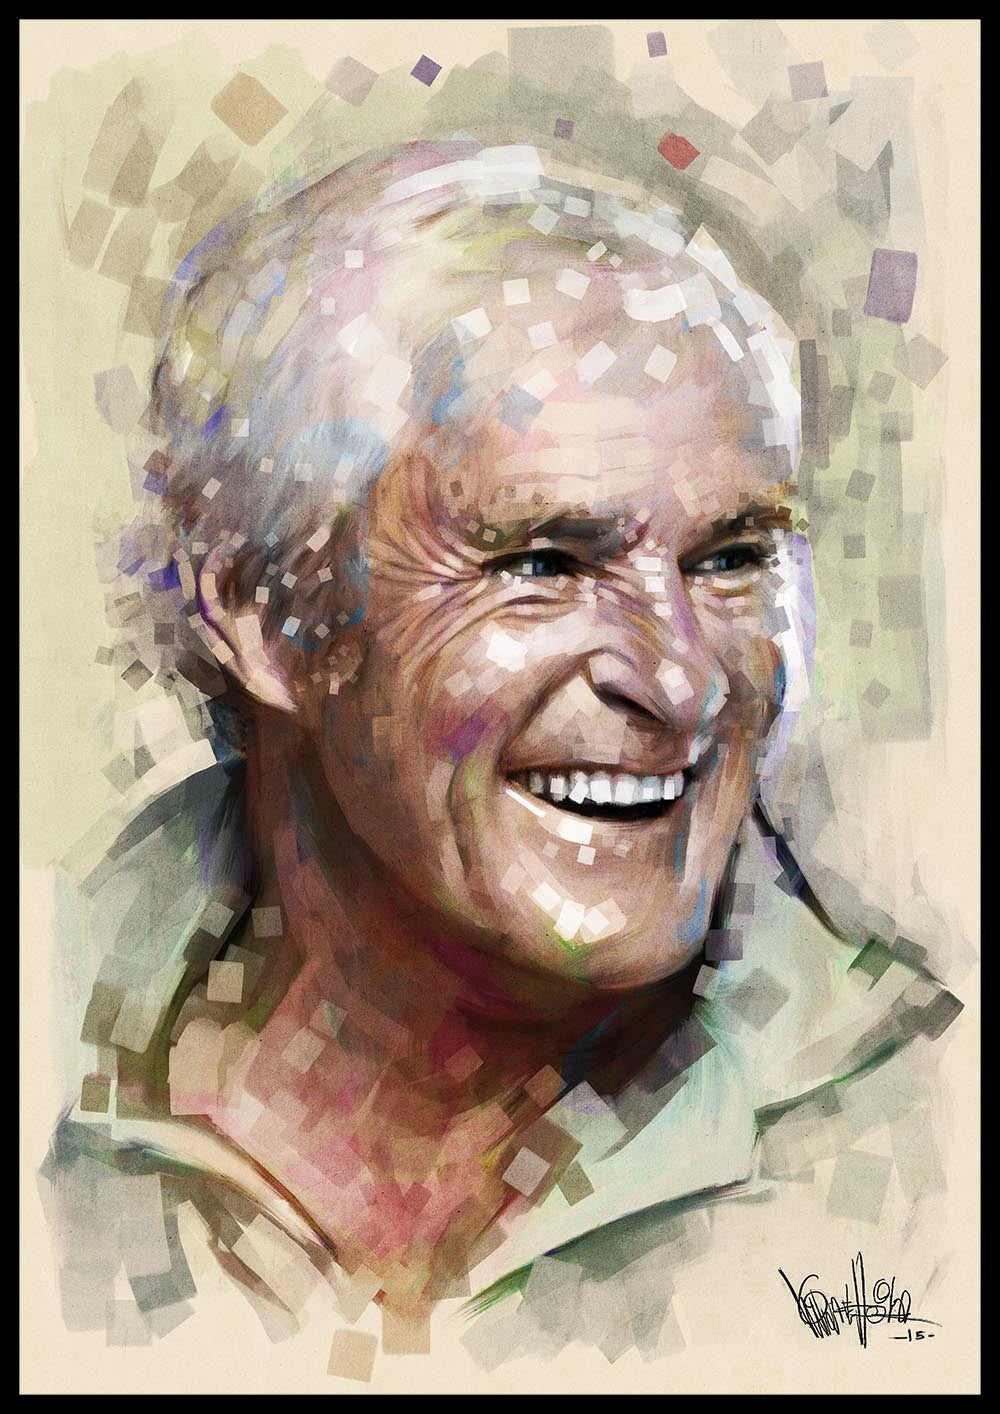 Timothy Leary Tribute #1